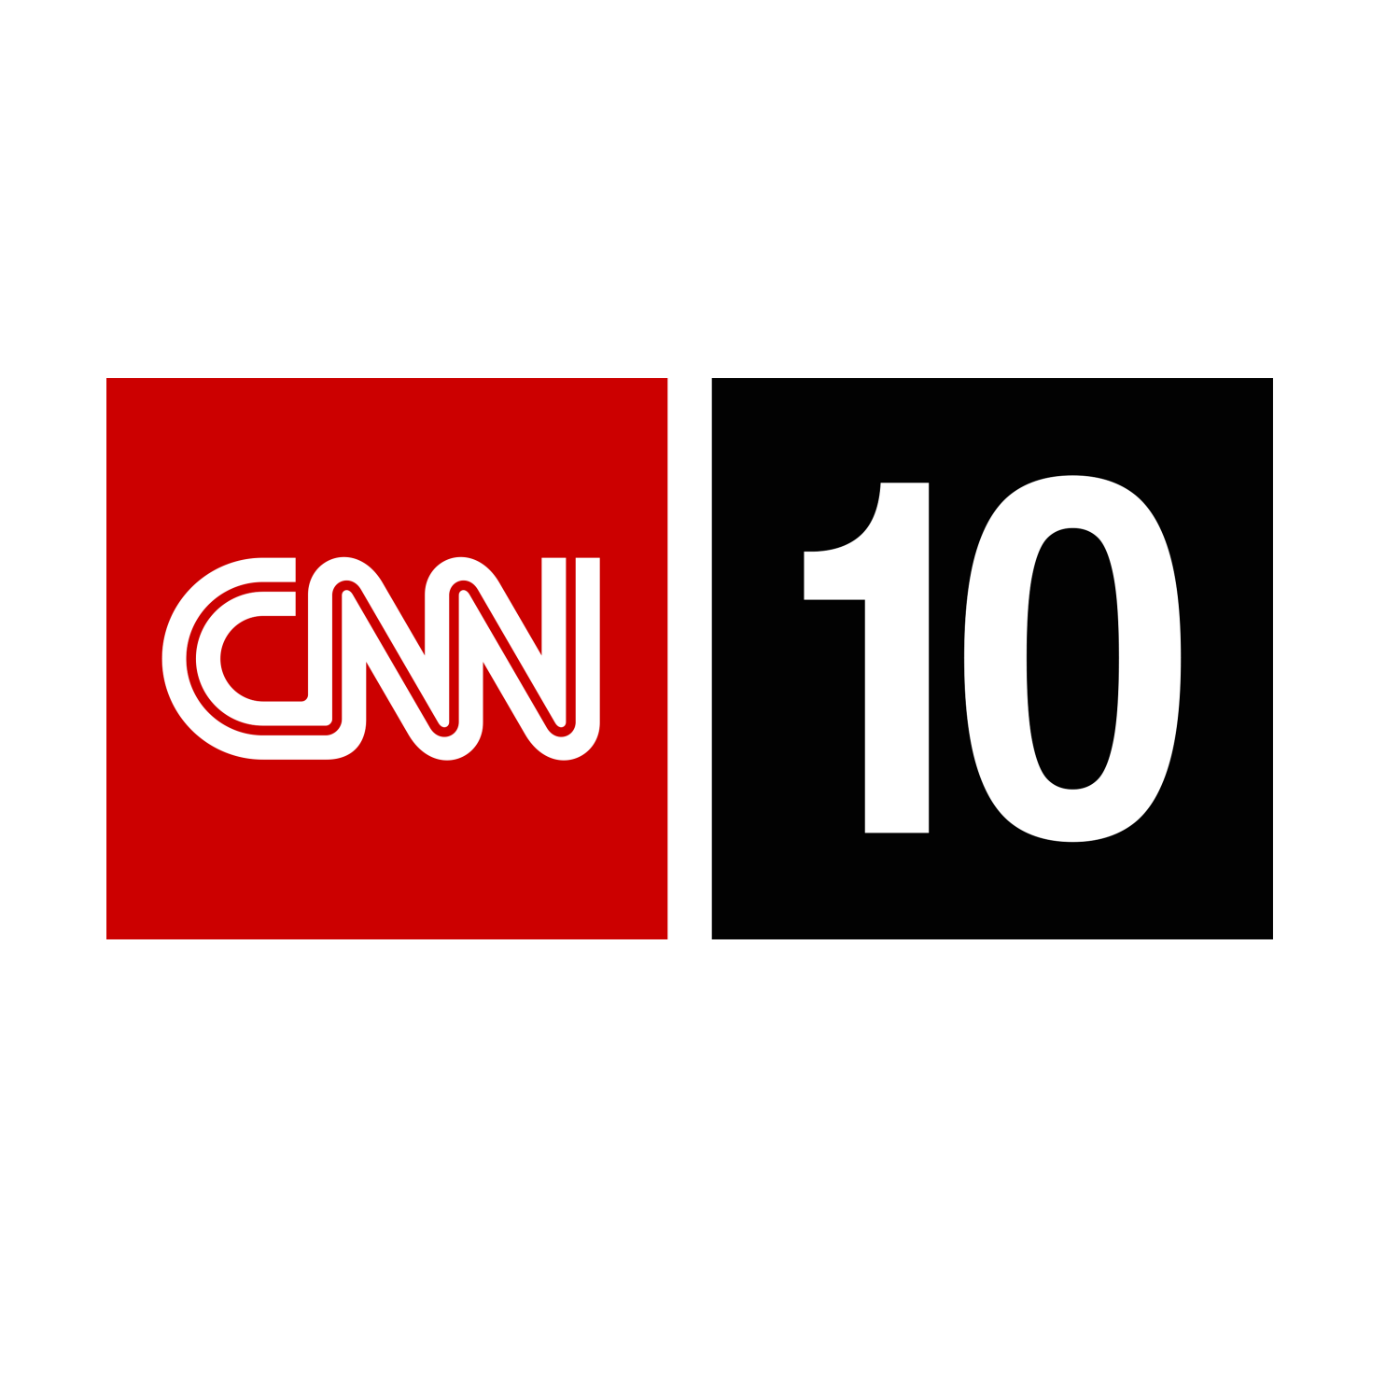 CNN Student News - March 7, 2013